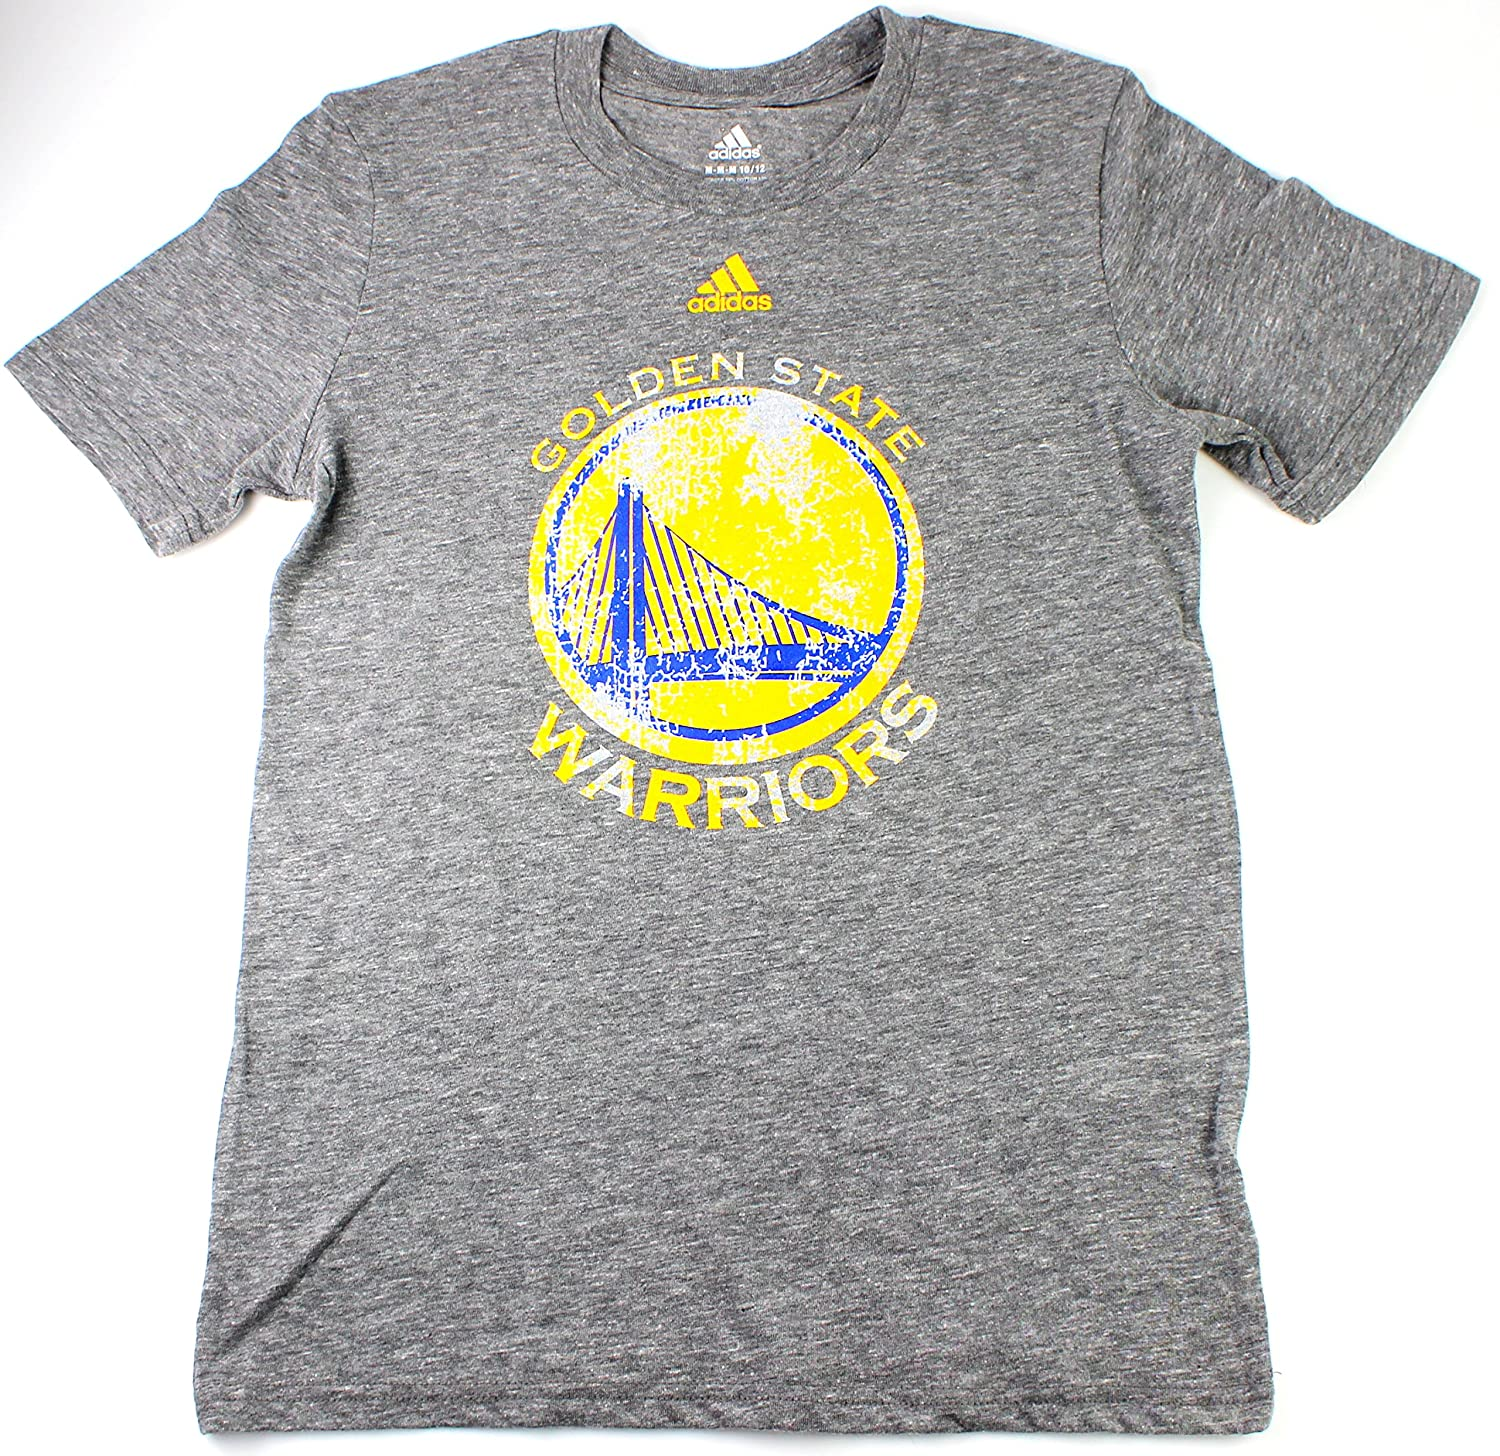 Stephen Curry Adidas # B0191Z13NC 30 Golden State Warriors Adidas Golden YouthグレーGrinder Tri Blendシャツ Small B0191Z13NC, 億万両本舗和作:dfcf4a1c --- sayselfiee.com